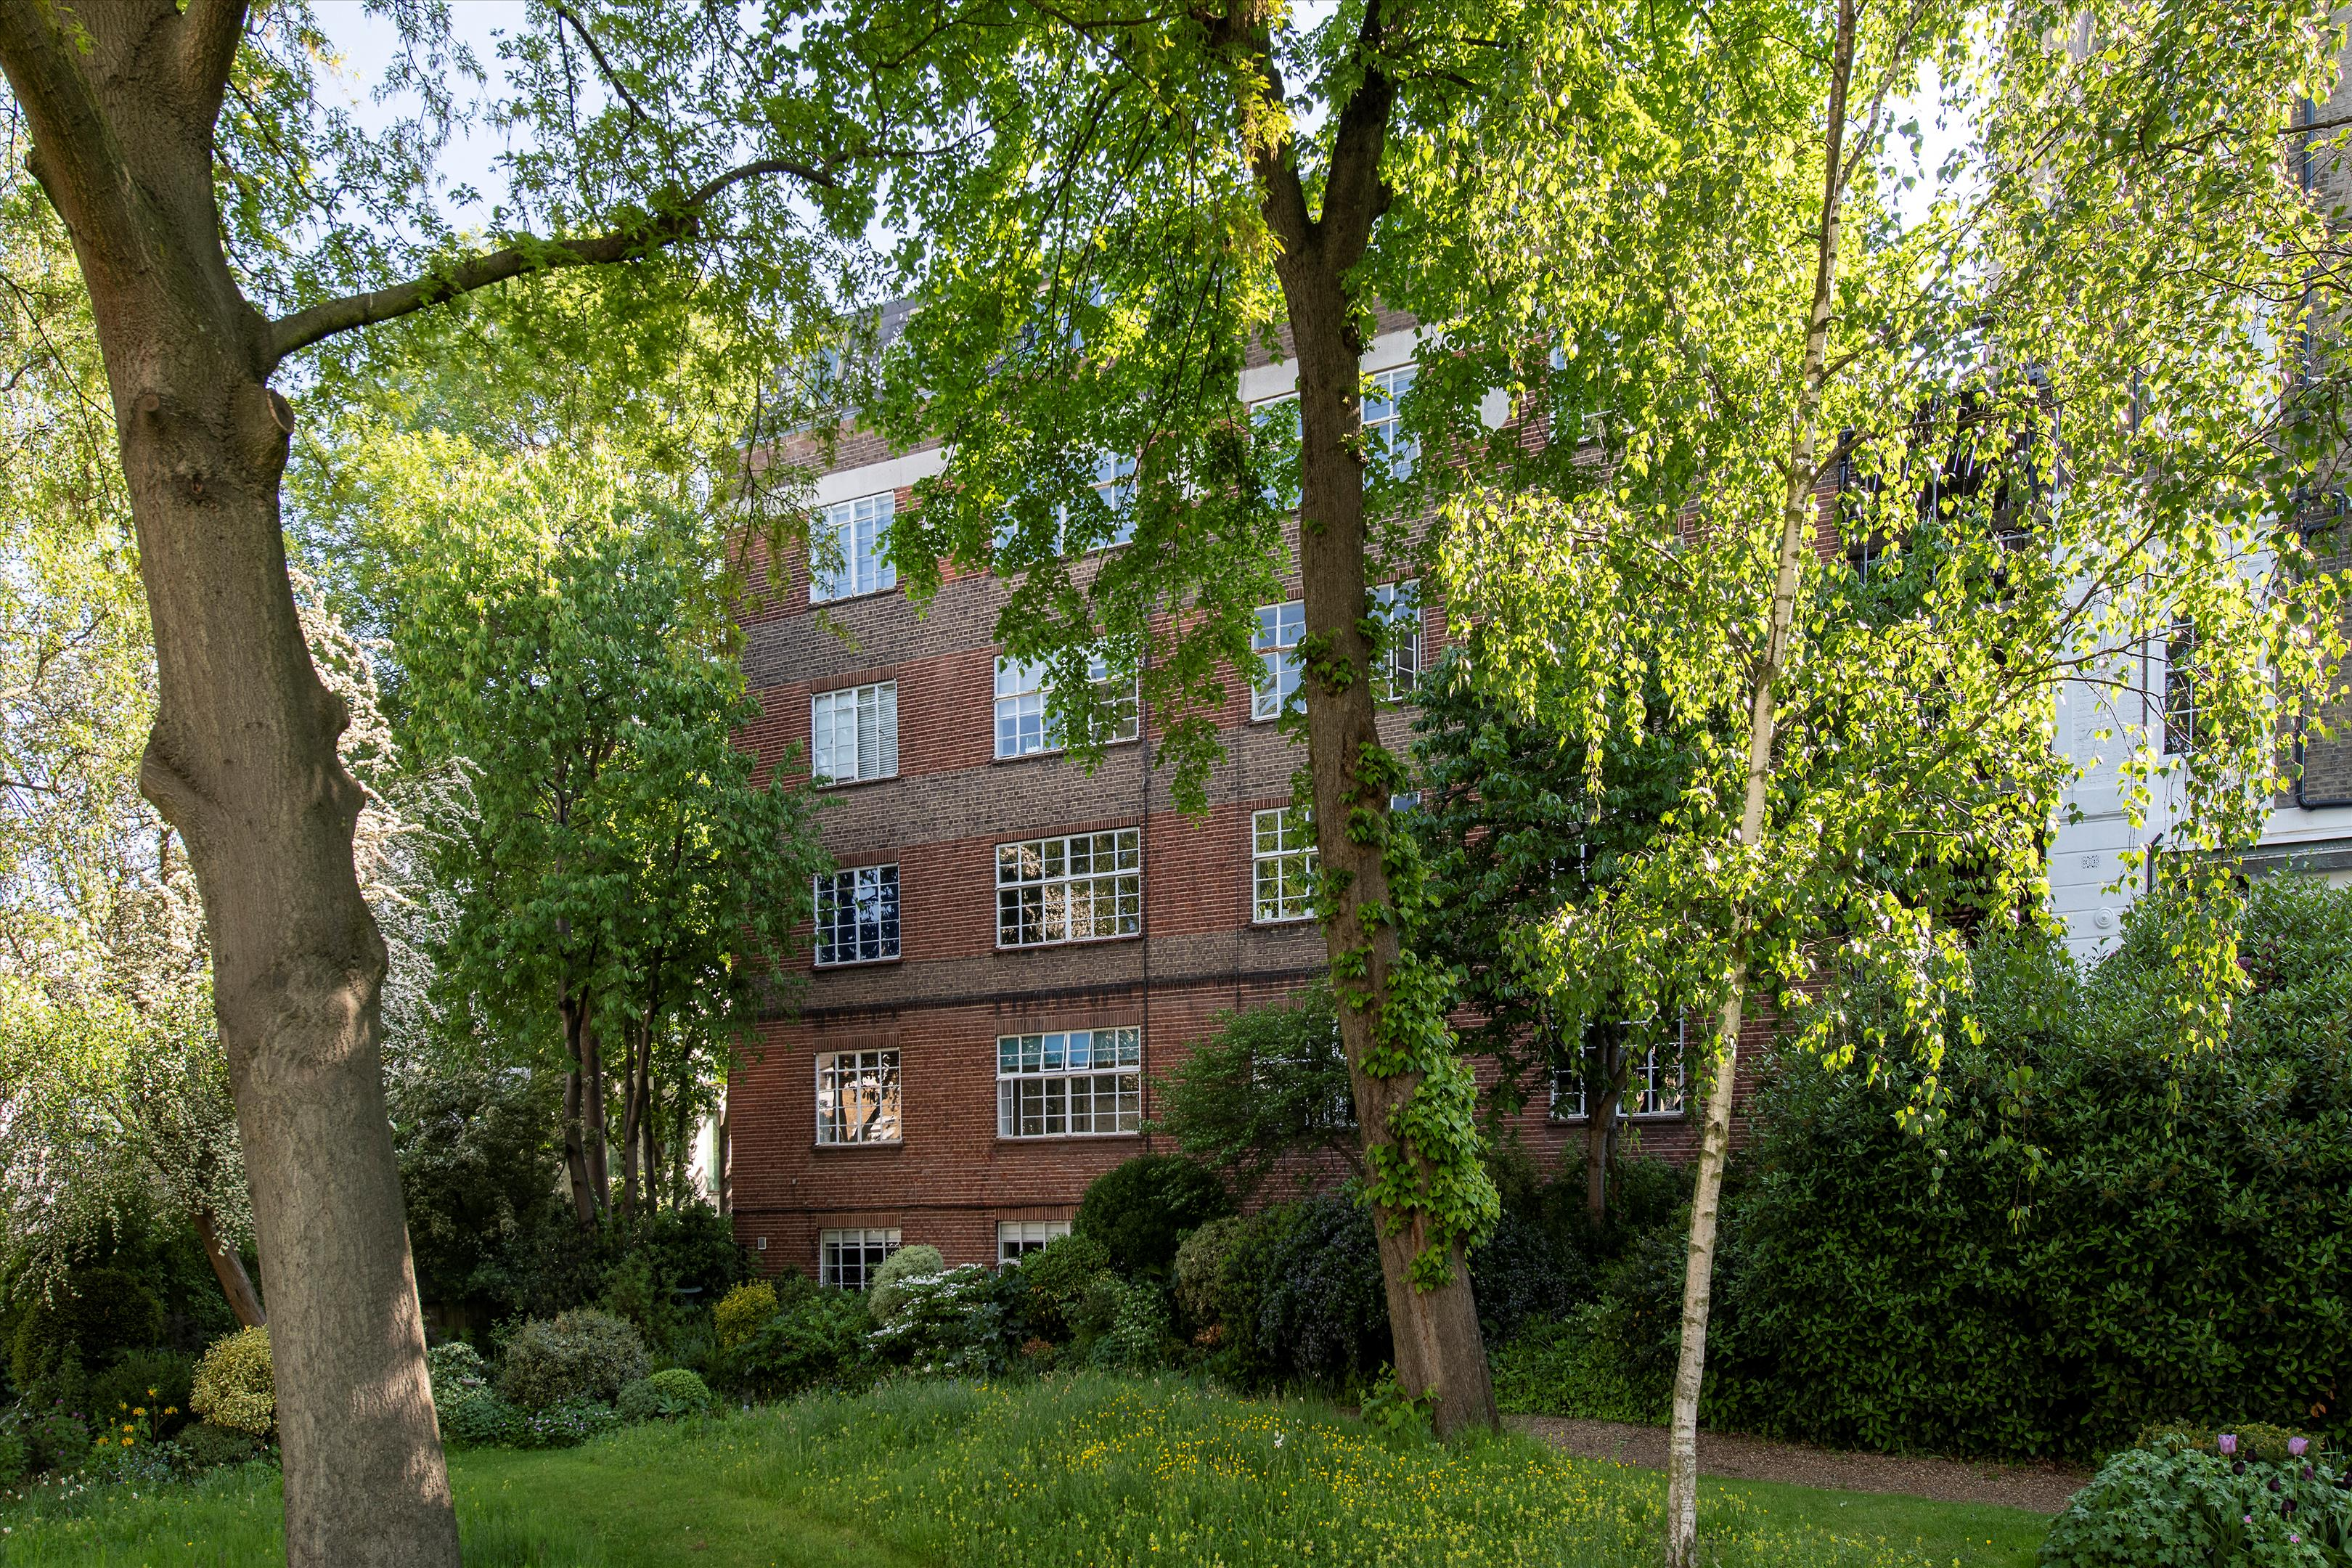 Notting Hill Ladbroke Grove flat for sale in ladbroke grove house, 77 ladbroke grove